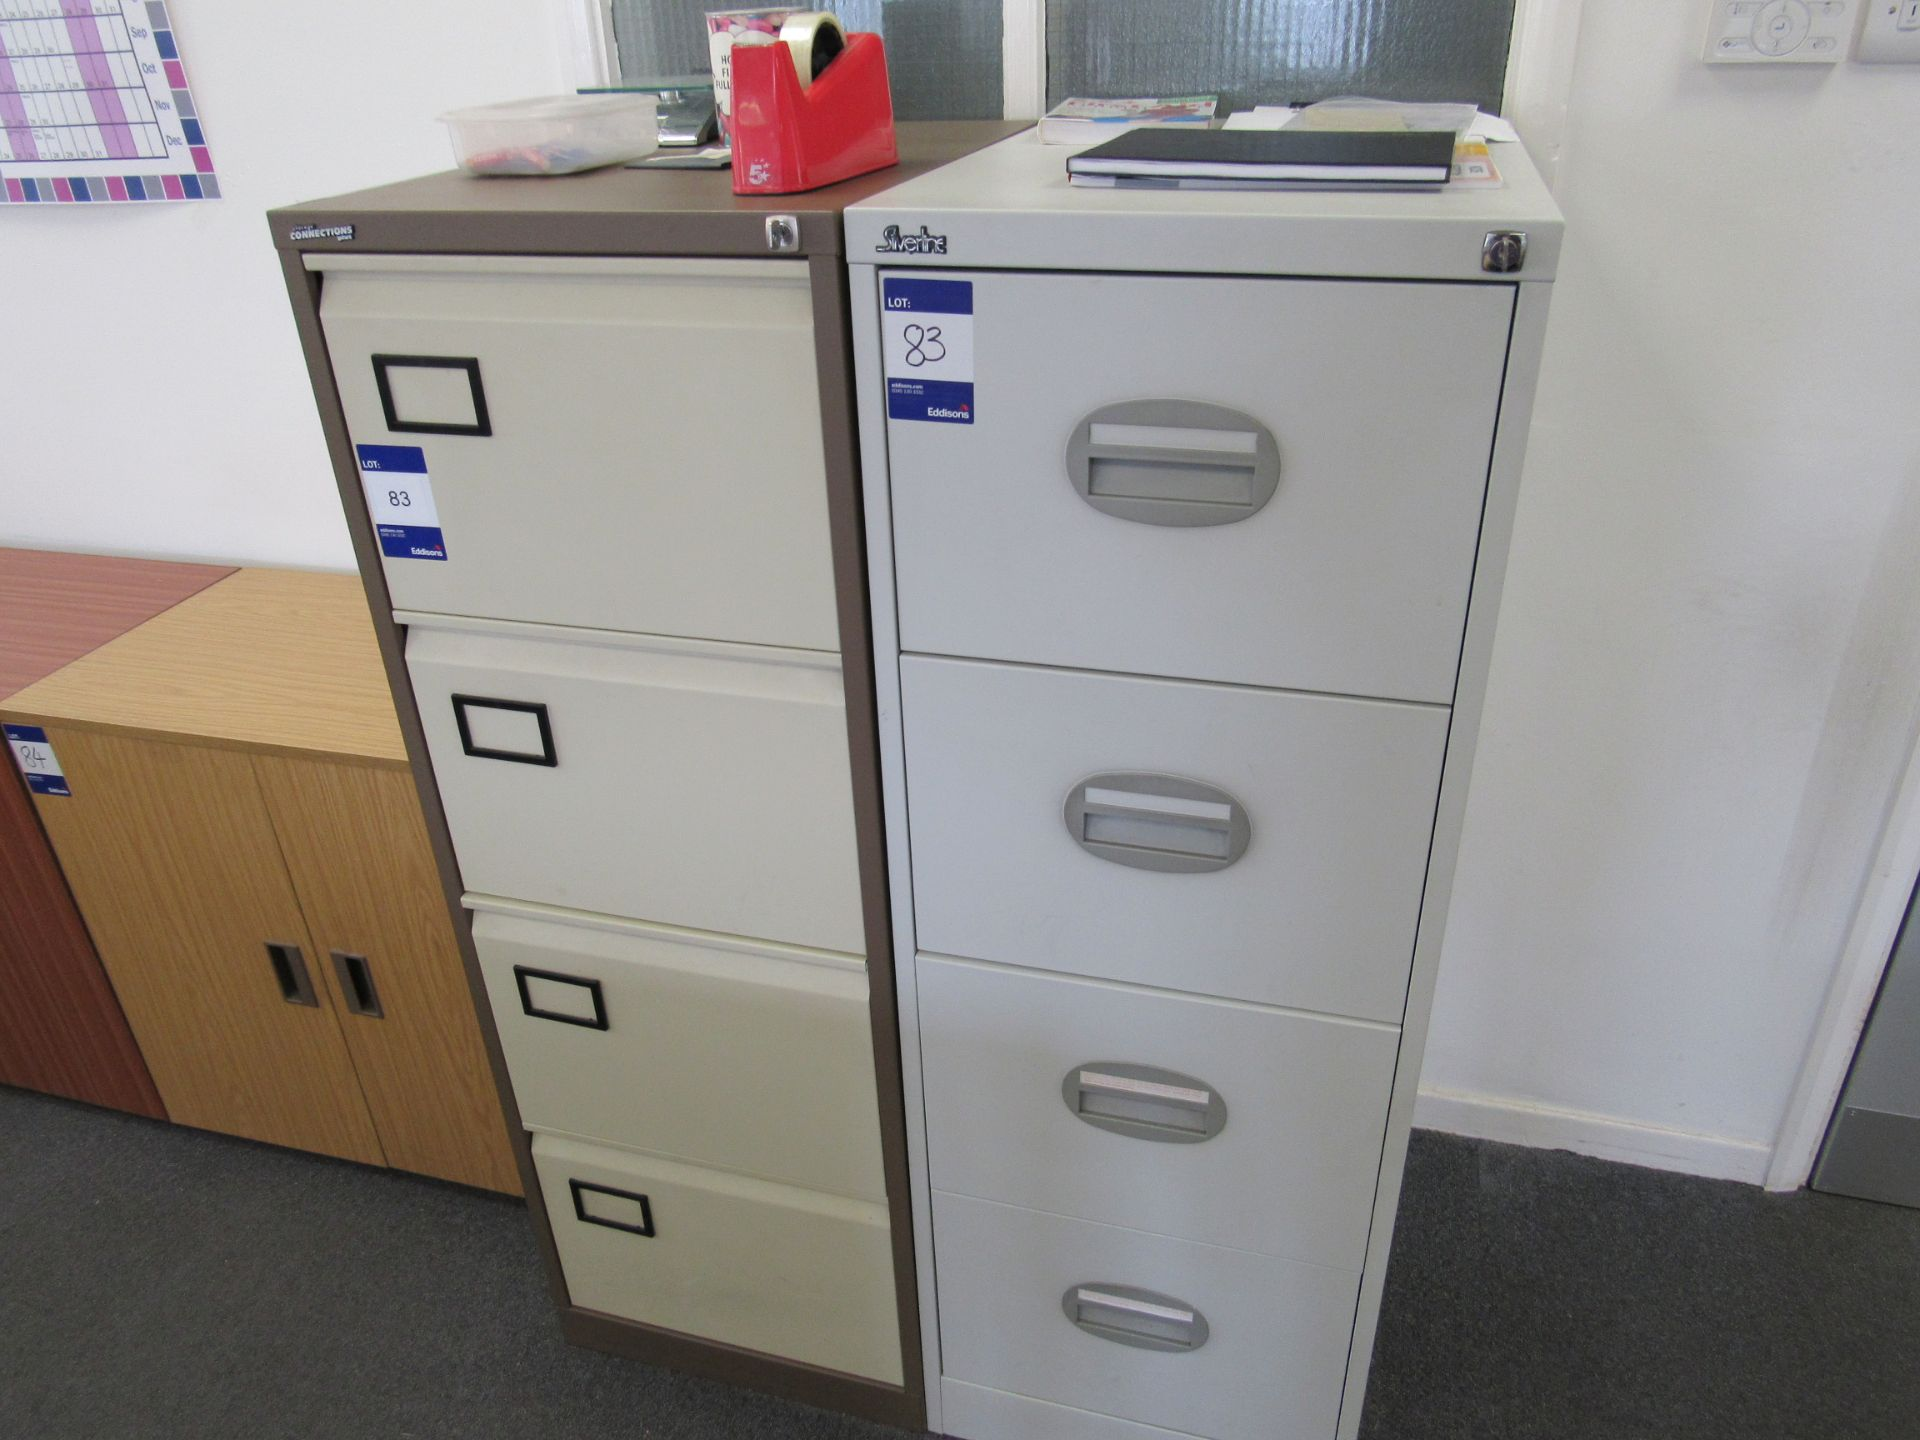 Storage Connections Plus 4 drawer metal filing cabinet, and Silverline metal 4 drawer cabinet, to